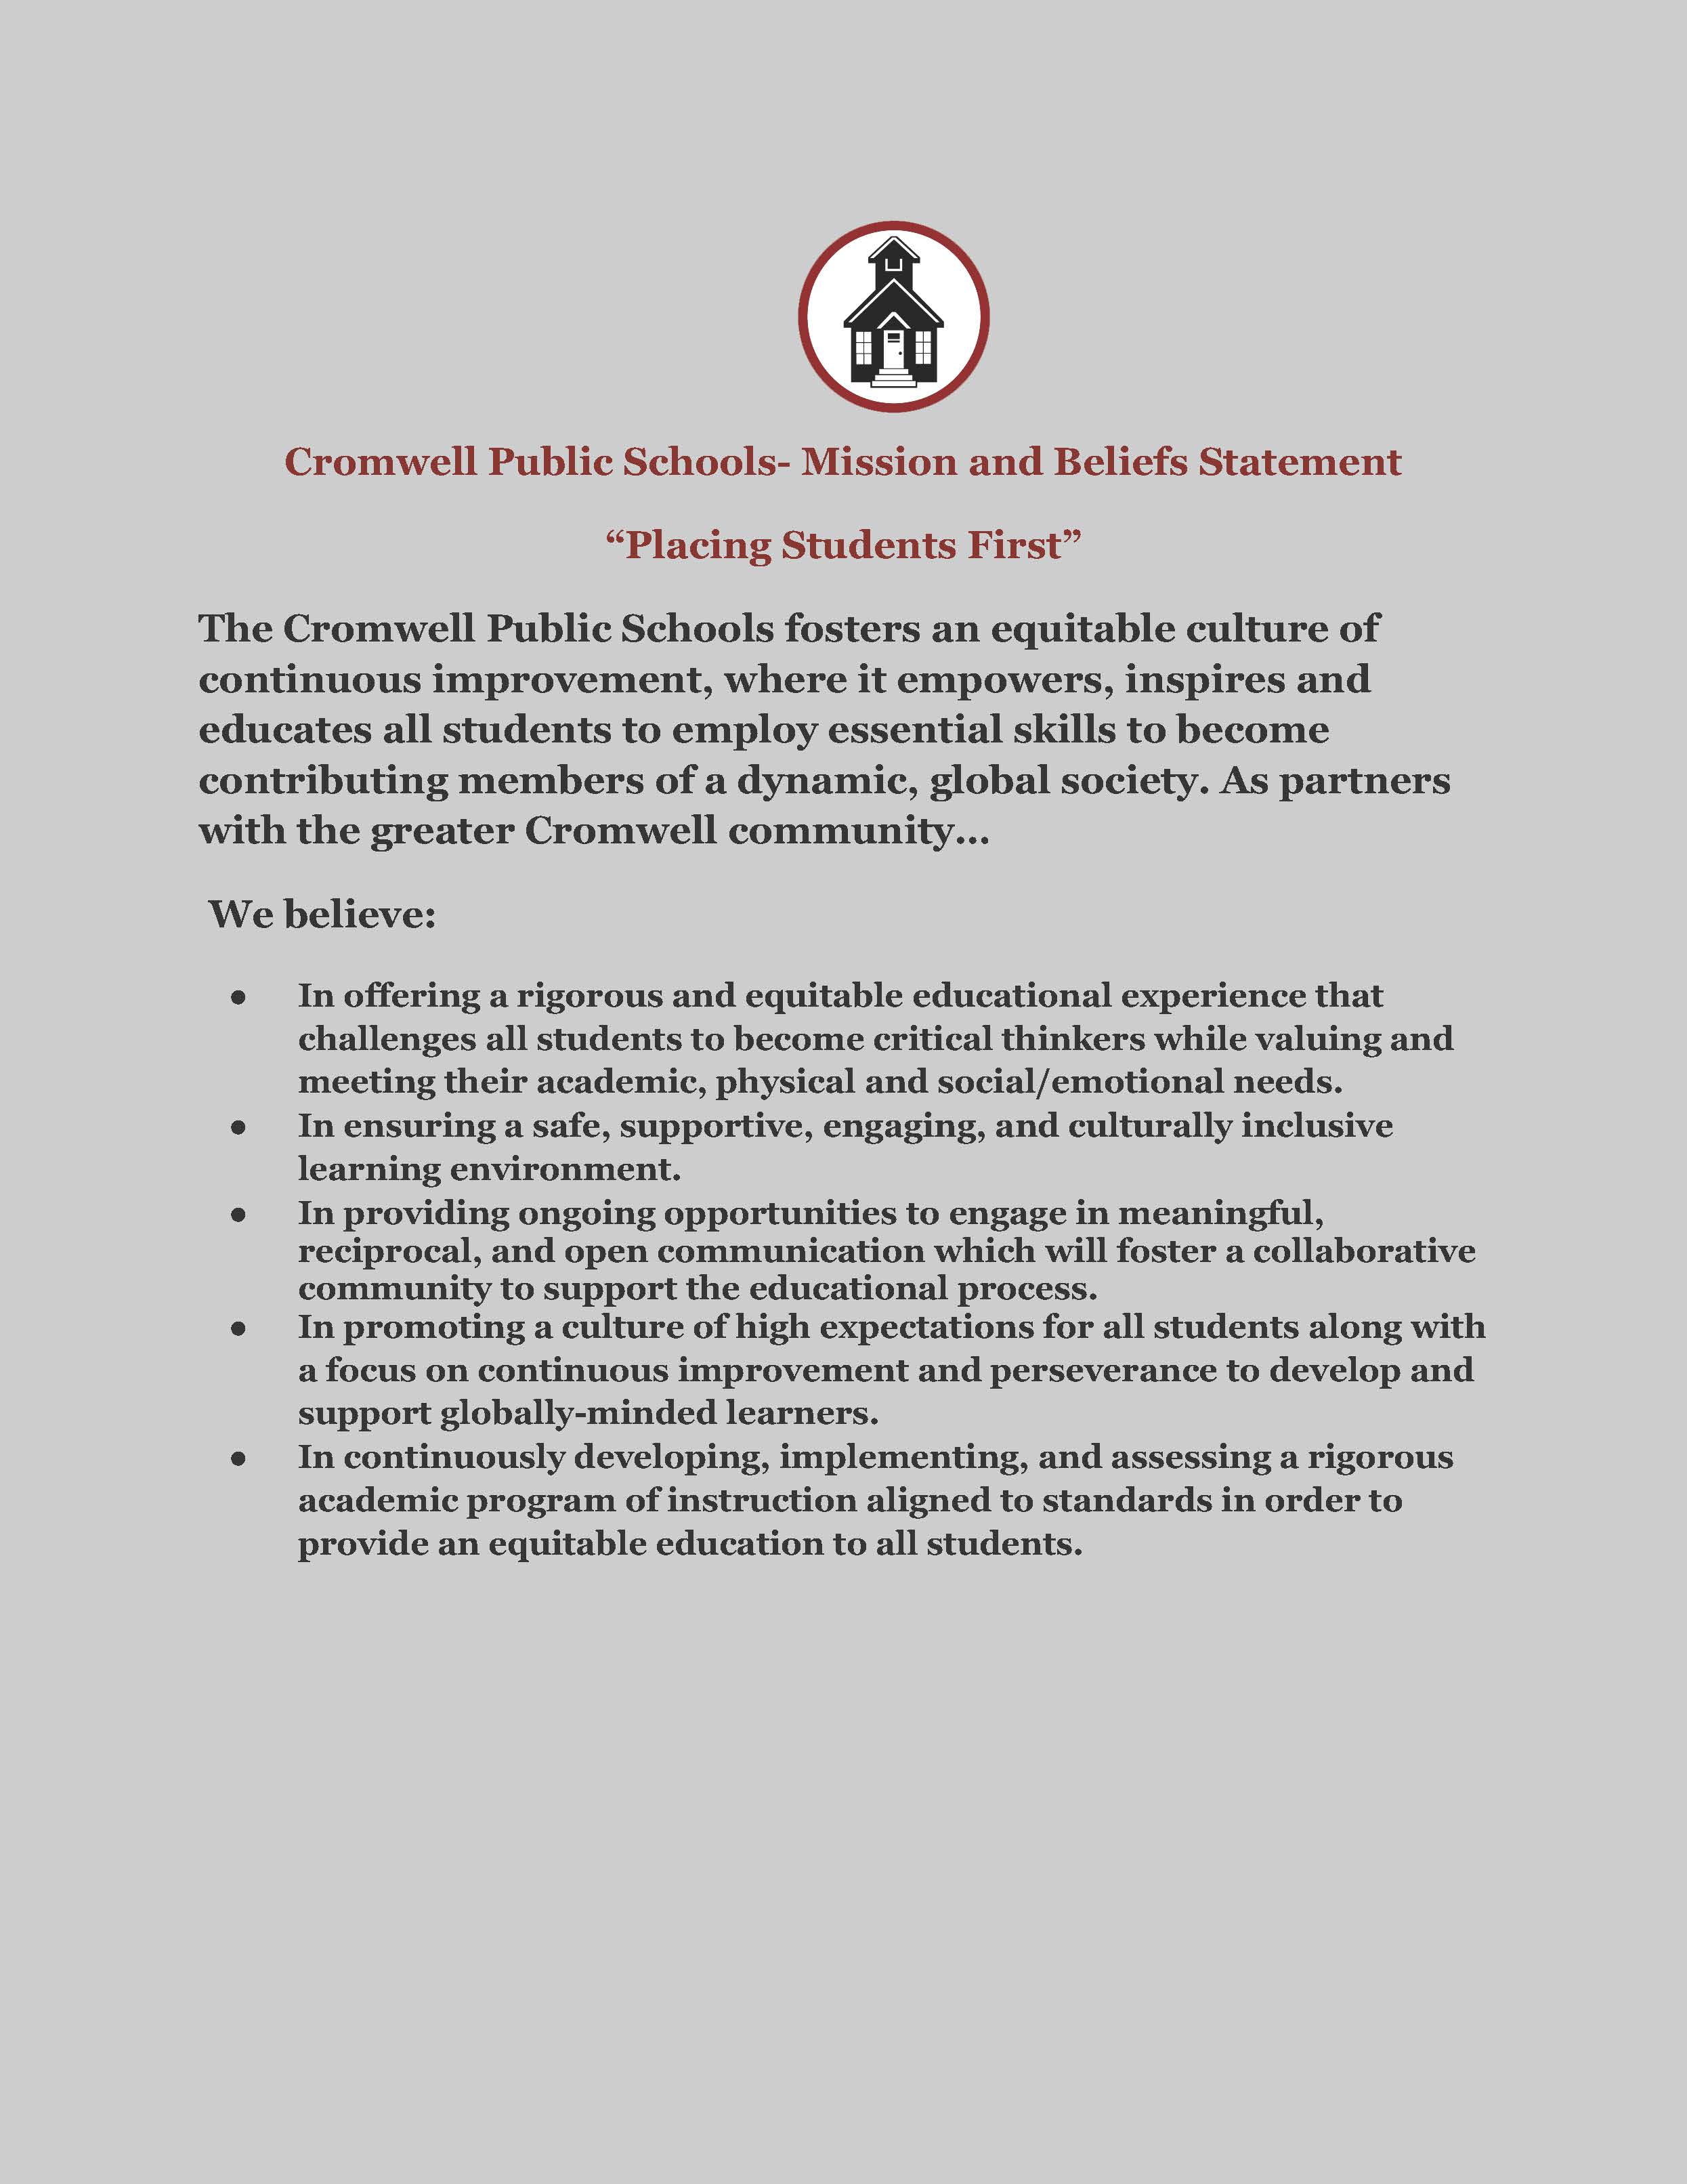 Cromwell Public Schools - Mission and Beliefs Statement